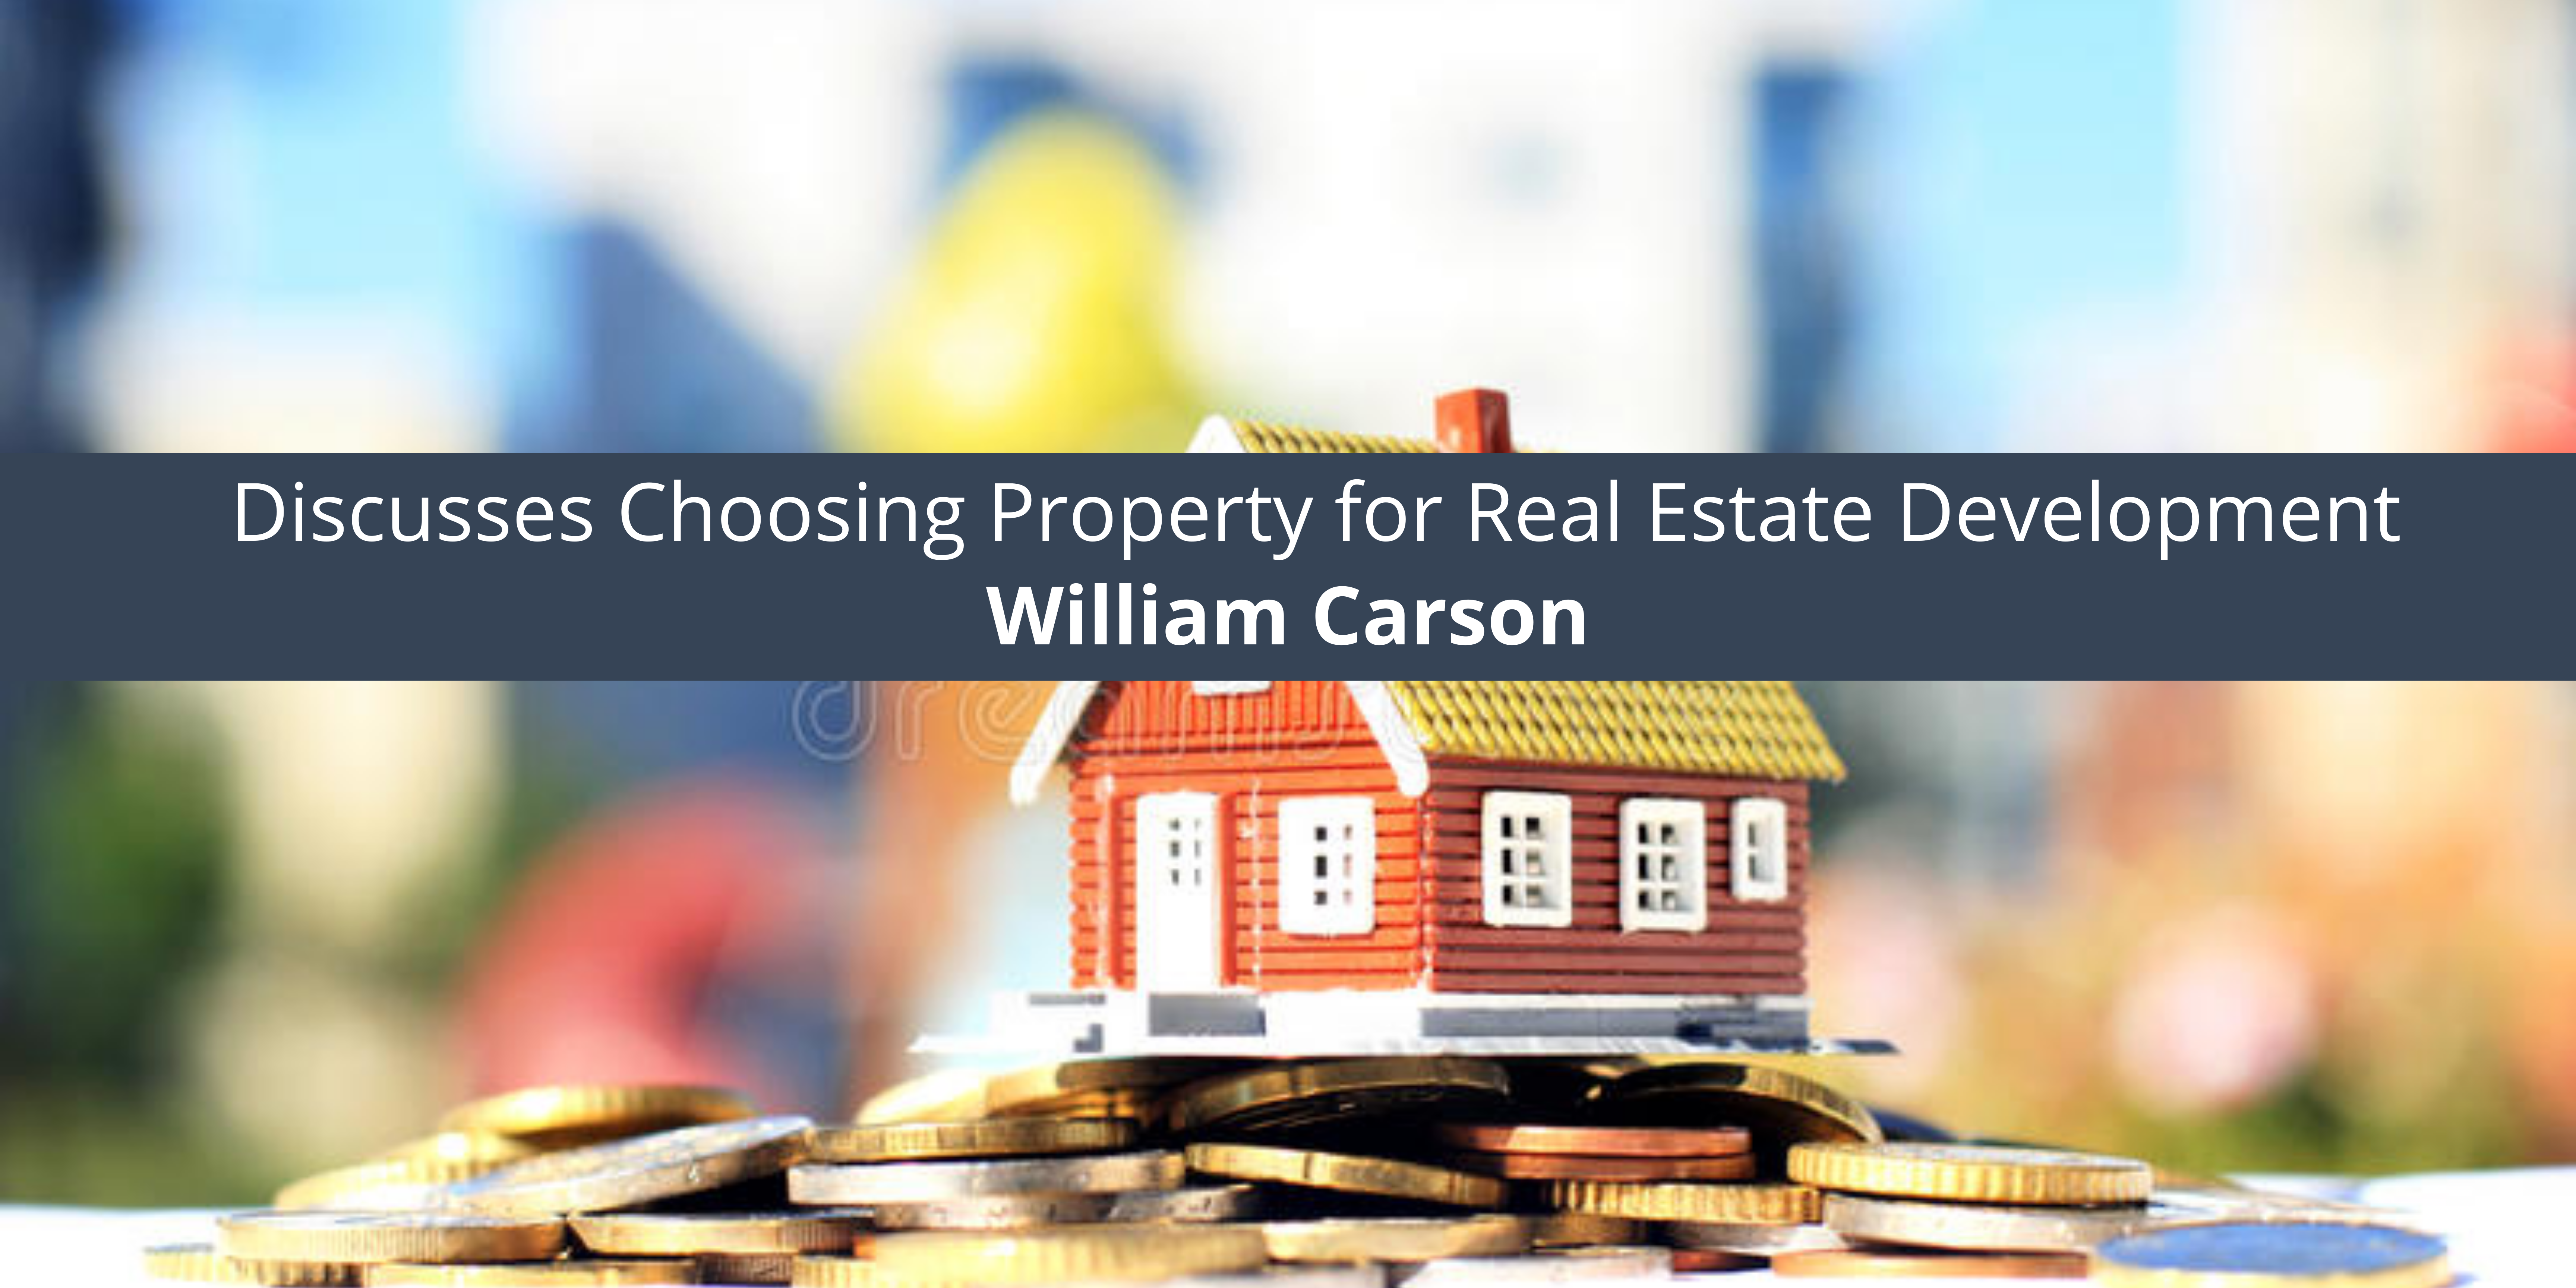 William Carson Discusses Choosing Property for Real Estate Development